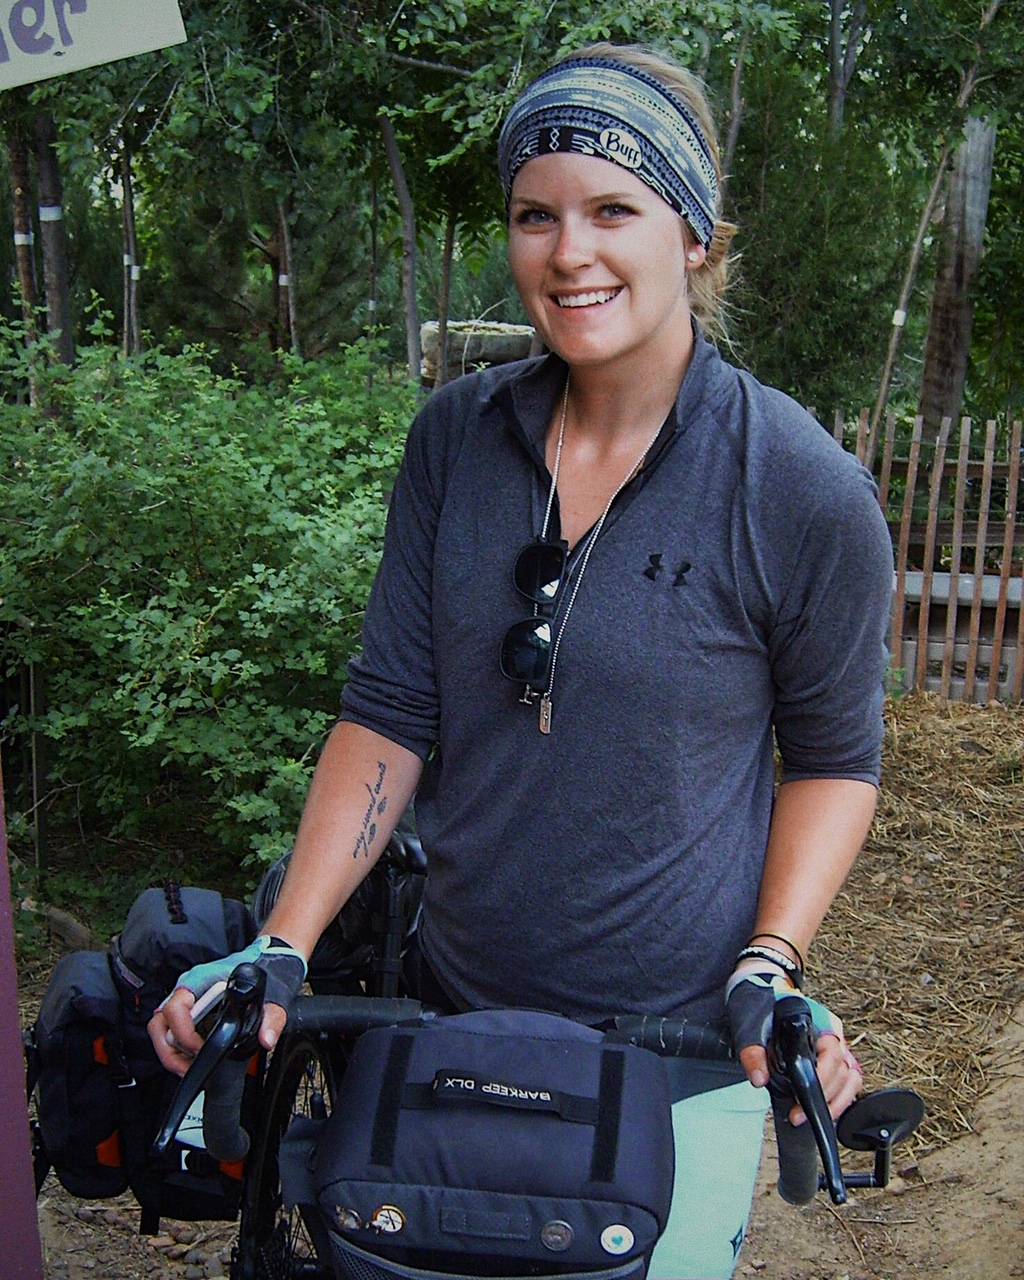 Here are Ashtyn's tips, encouragement, and inspiration for anyone who dreams of traveling by bicycle. -